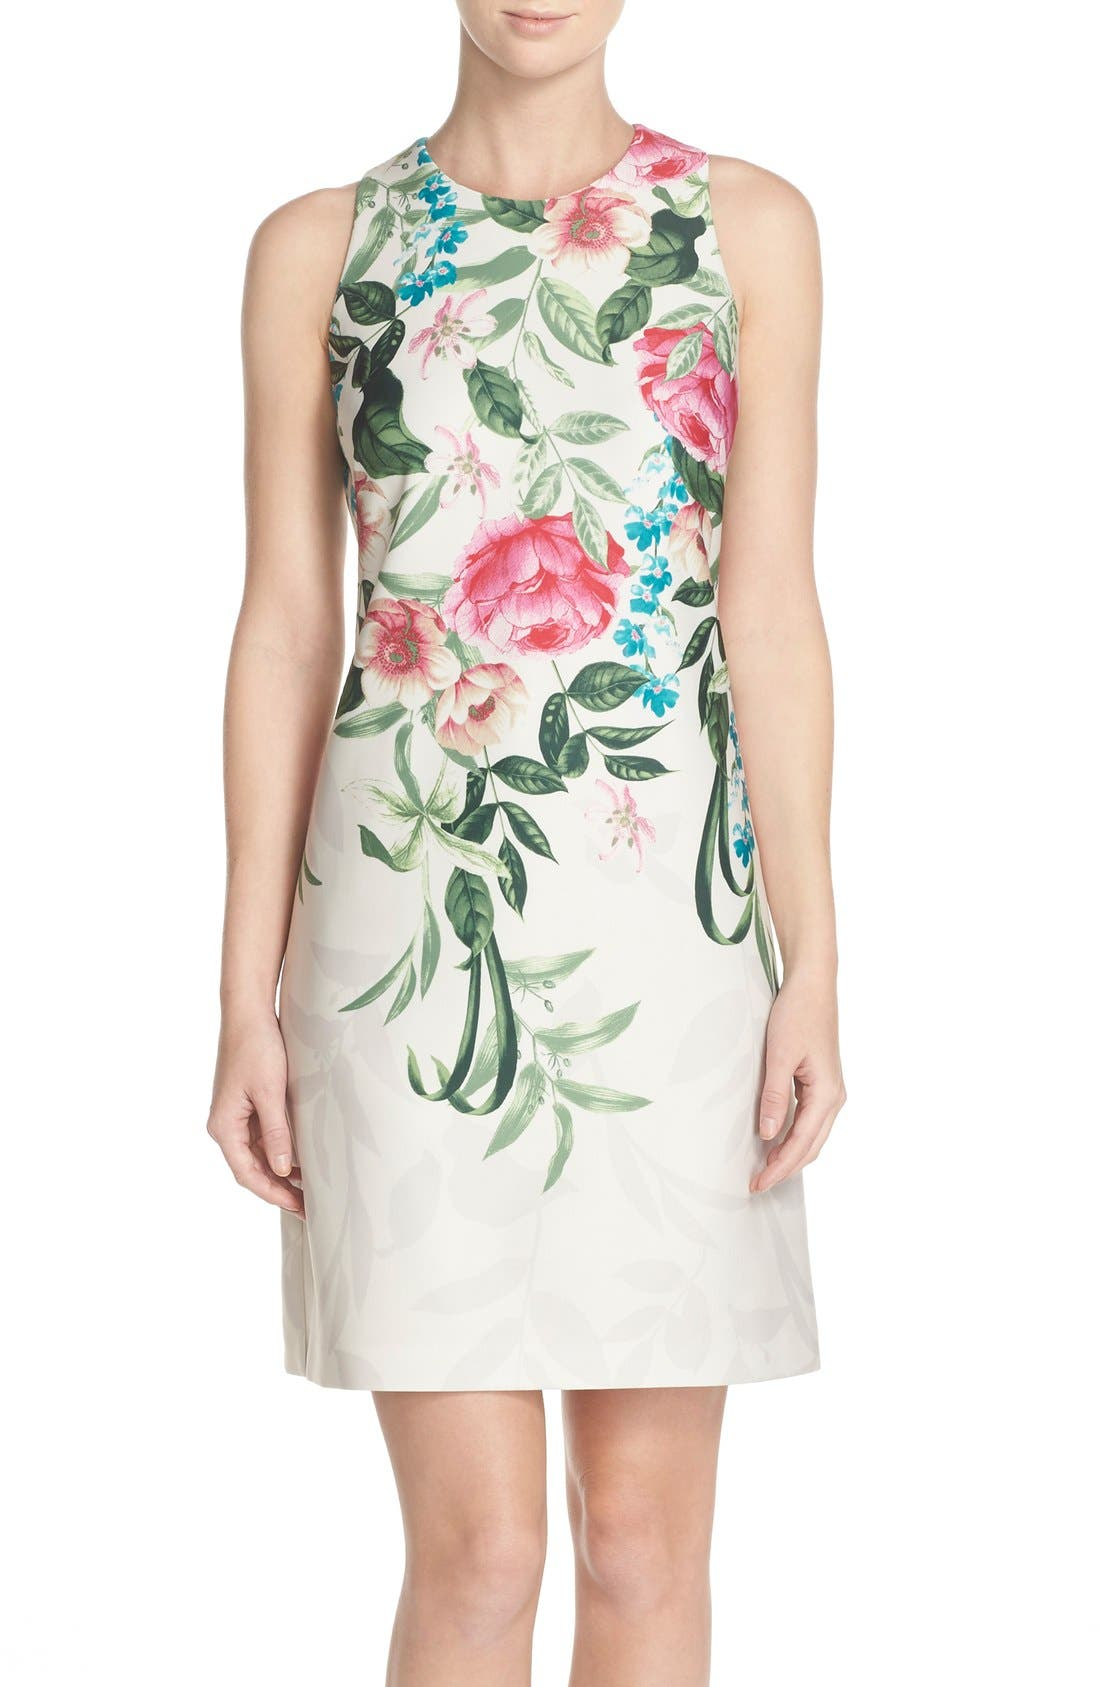 Main Image - Eliza J Placed Floral Print Stretch A-Line Dress (Regular & Petite)